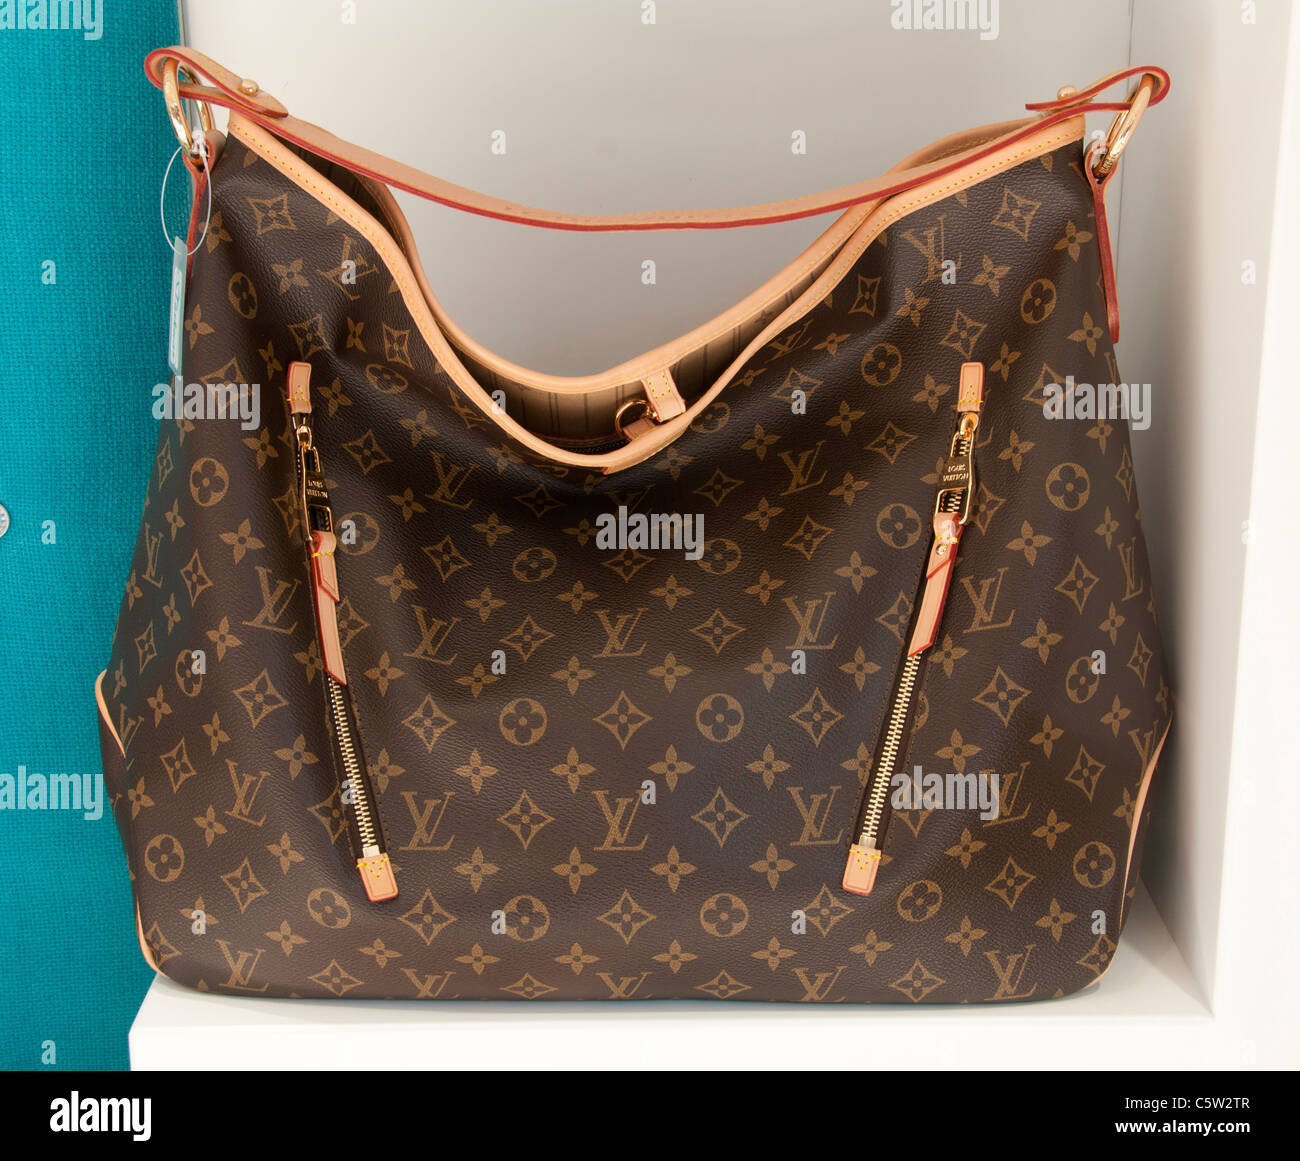 Louis Vuitton Mock Fake Imitation Forgery Sham Bag Bags